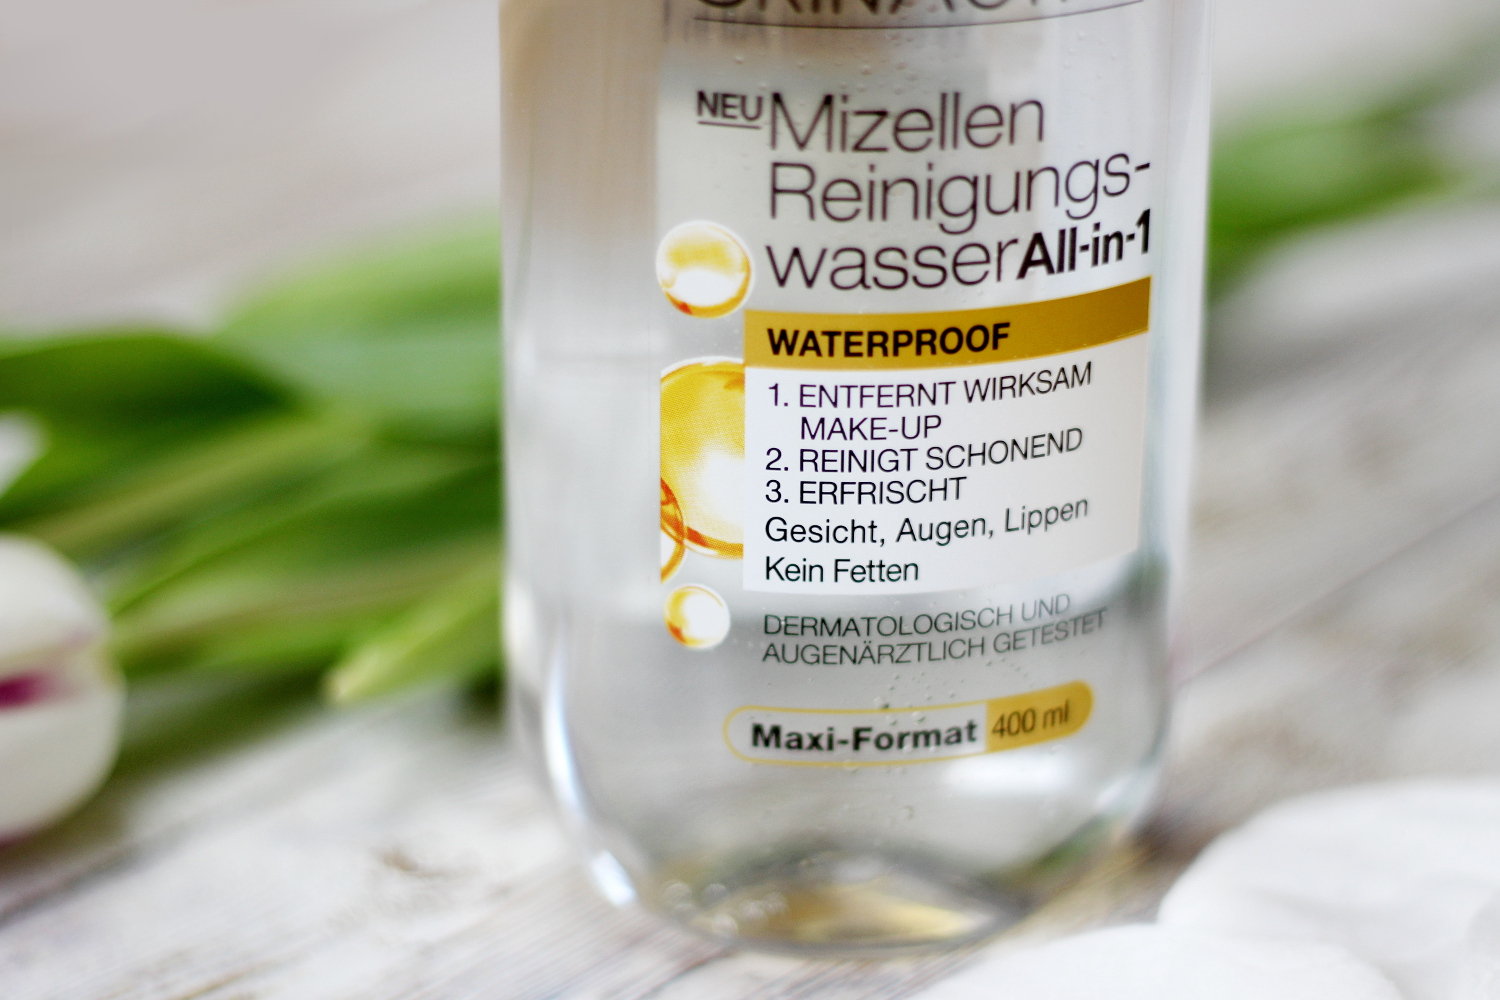 Garnier Mizellen Reinigungswasser All-in-1 Waterproof, Review, Test, Erfahrungsbericht, Beauty, Gesichtsreinigung, Bezaubernde Nana, bezauberndenana.de, Beautyblog